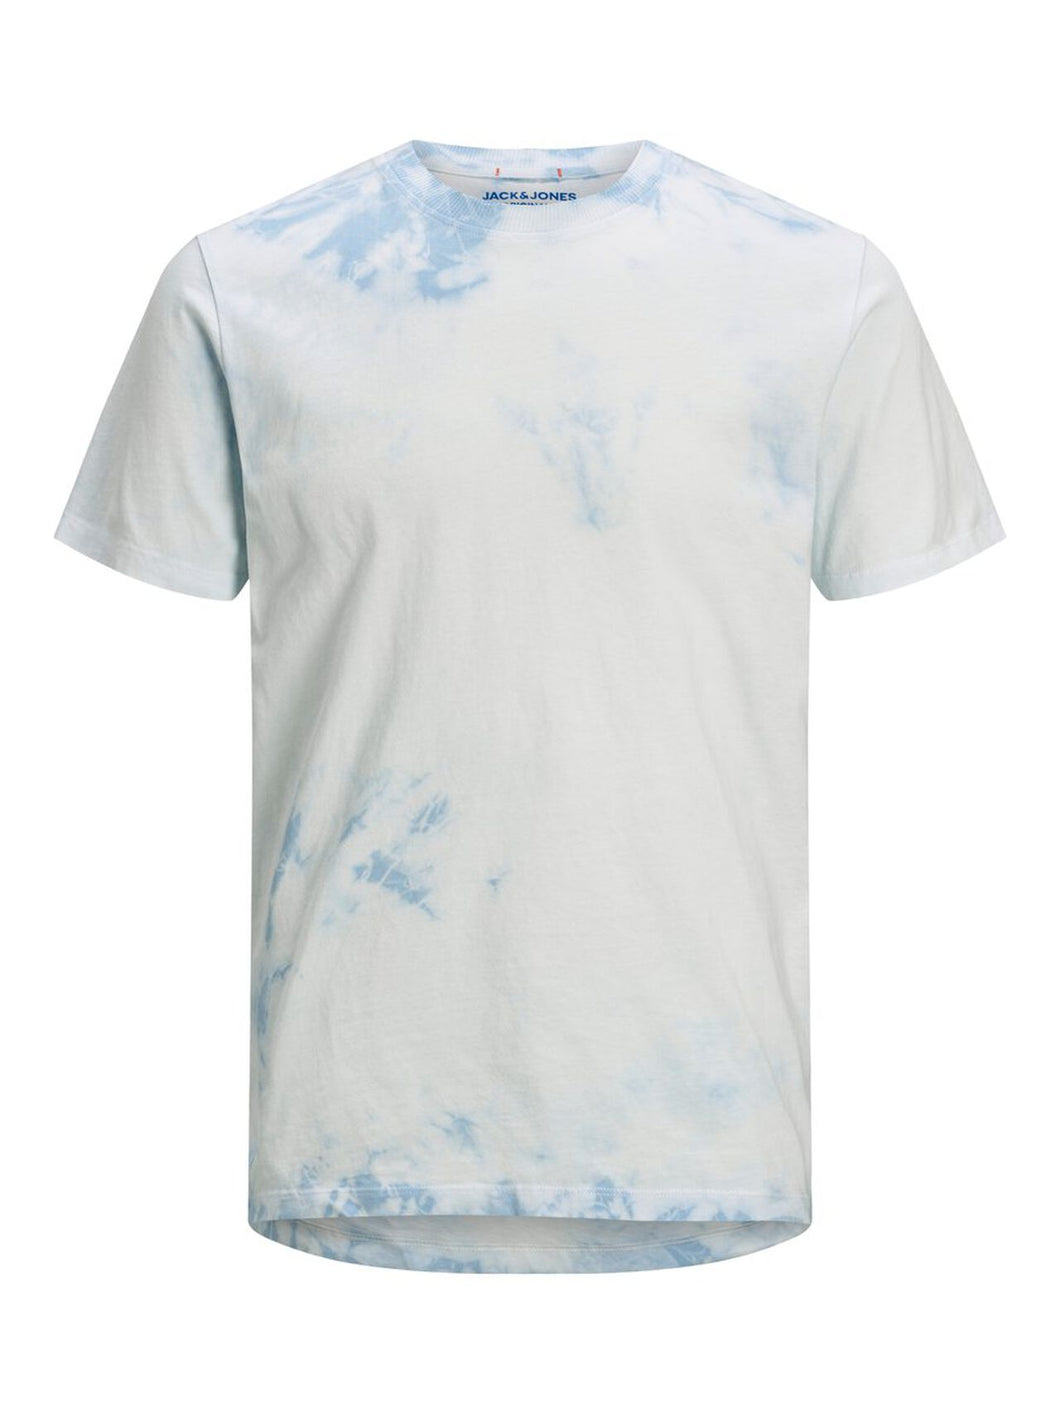 Jack & Jones Tee Tie Dye - Blue